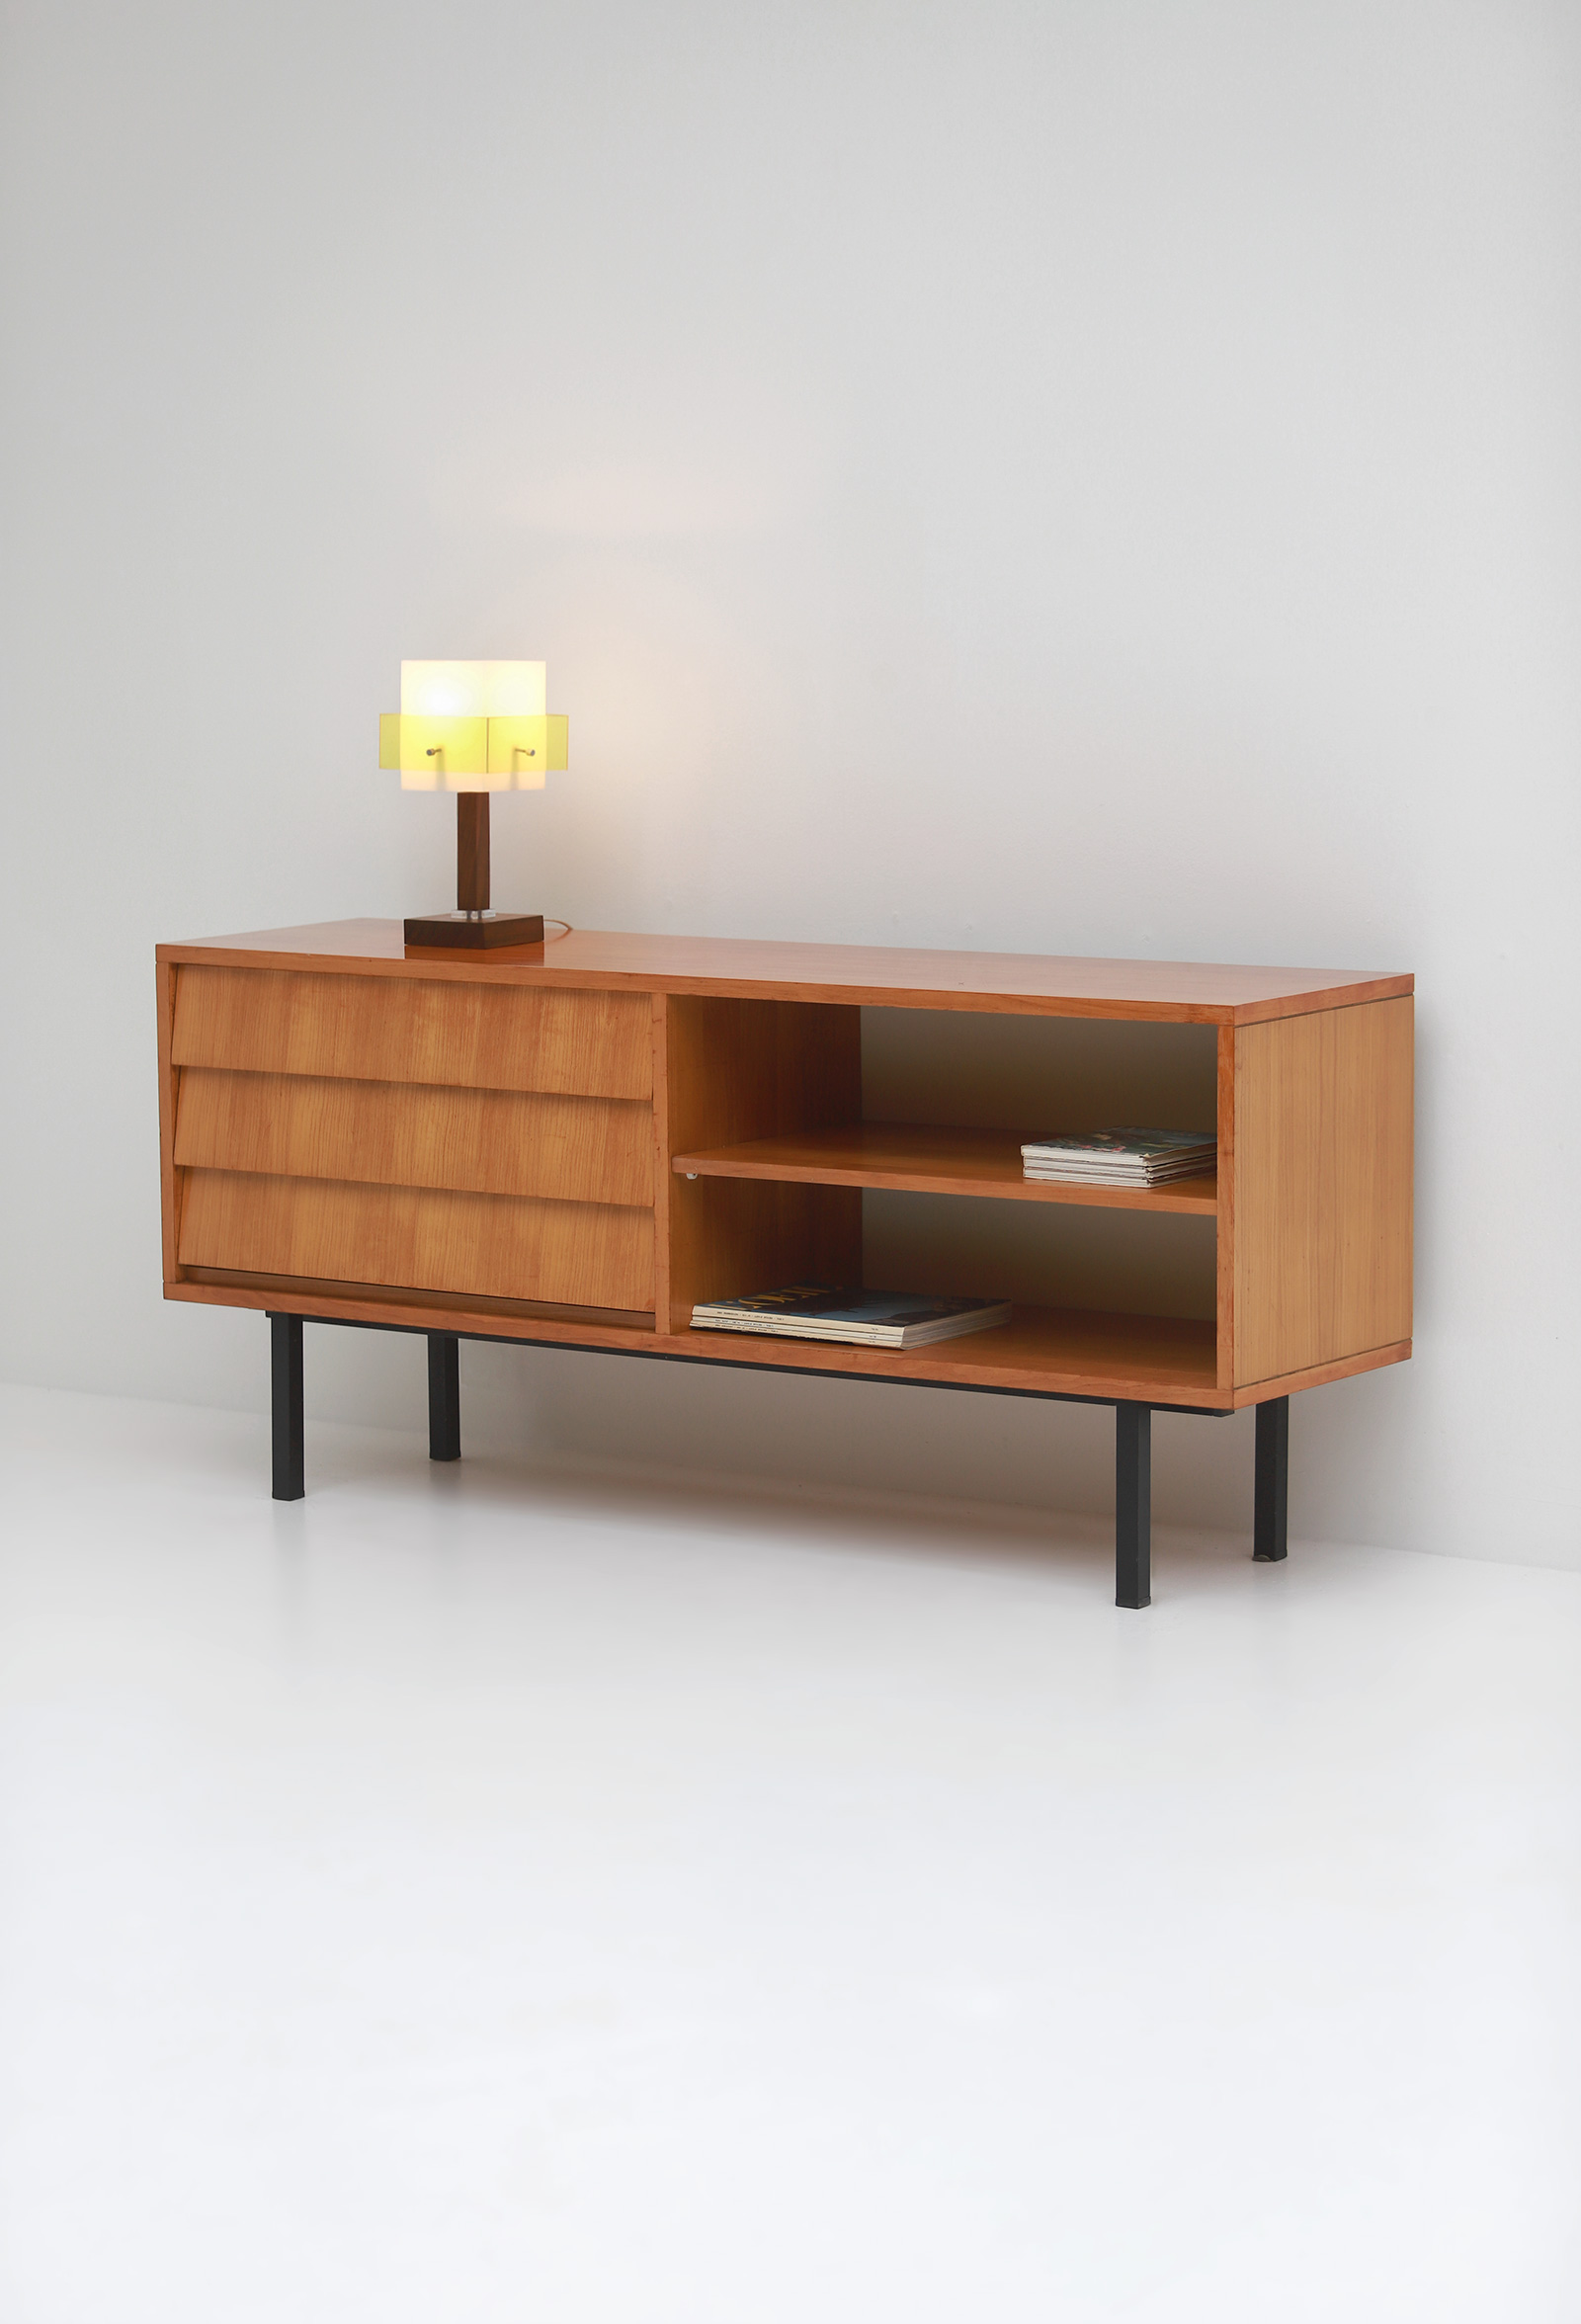 Alfred Hendrickx Credenza early sixtiesimage 2